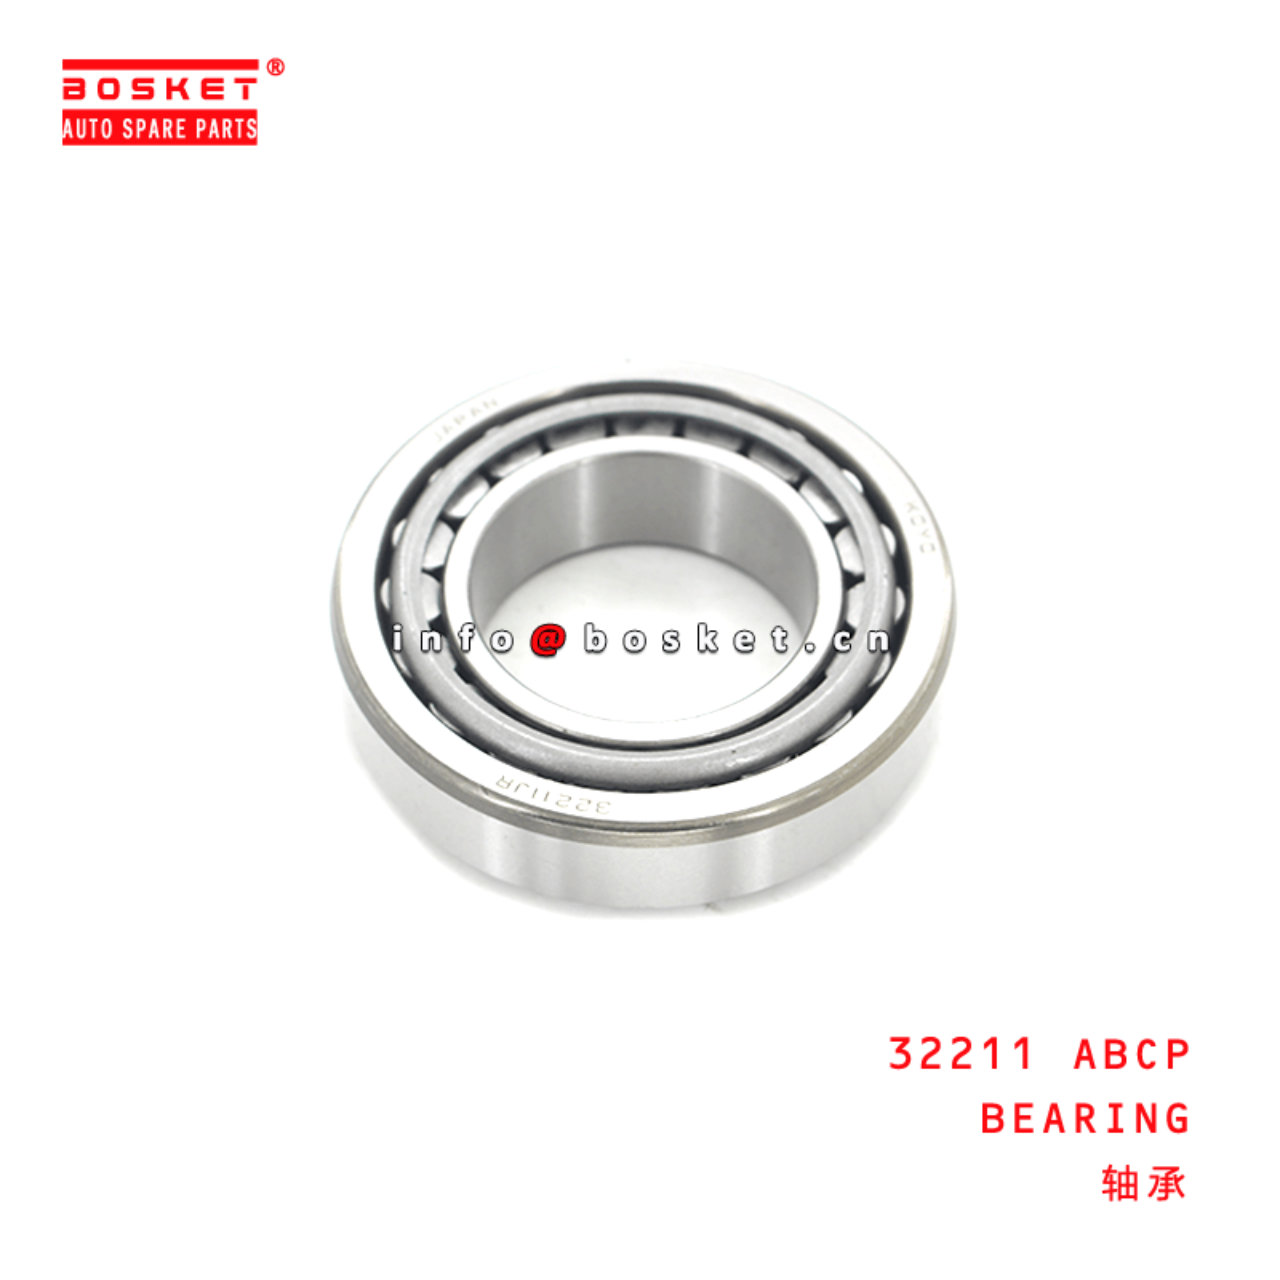 32211 Bearing Suitable for ISUZU